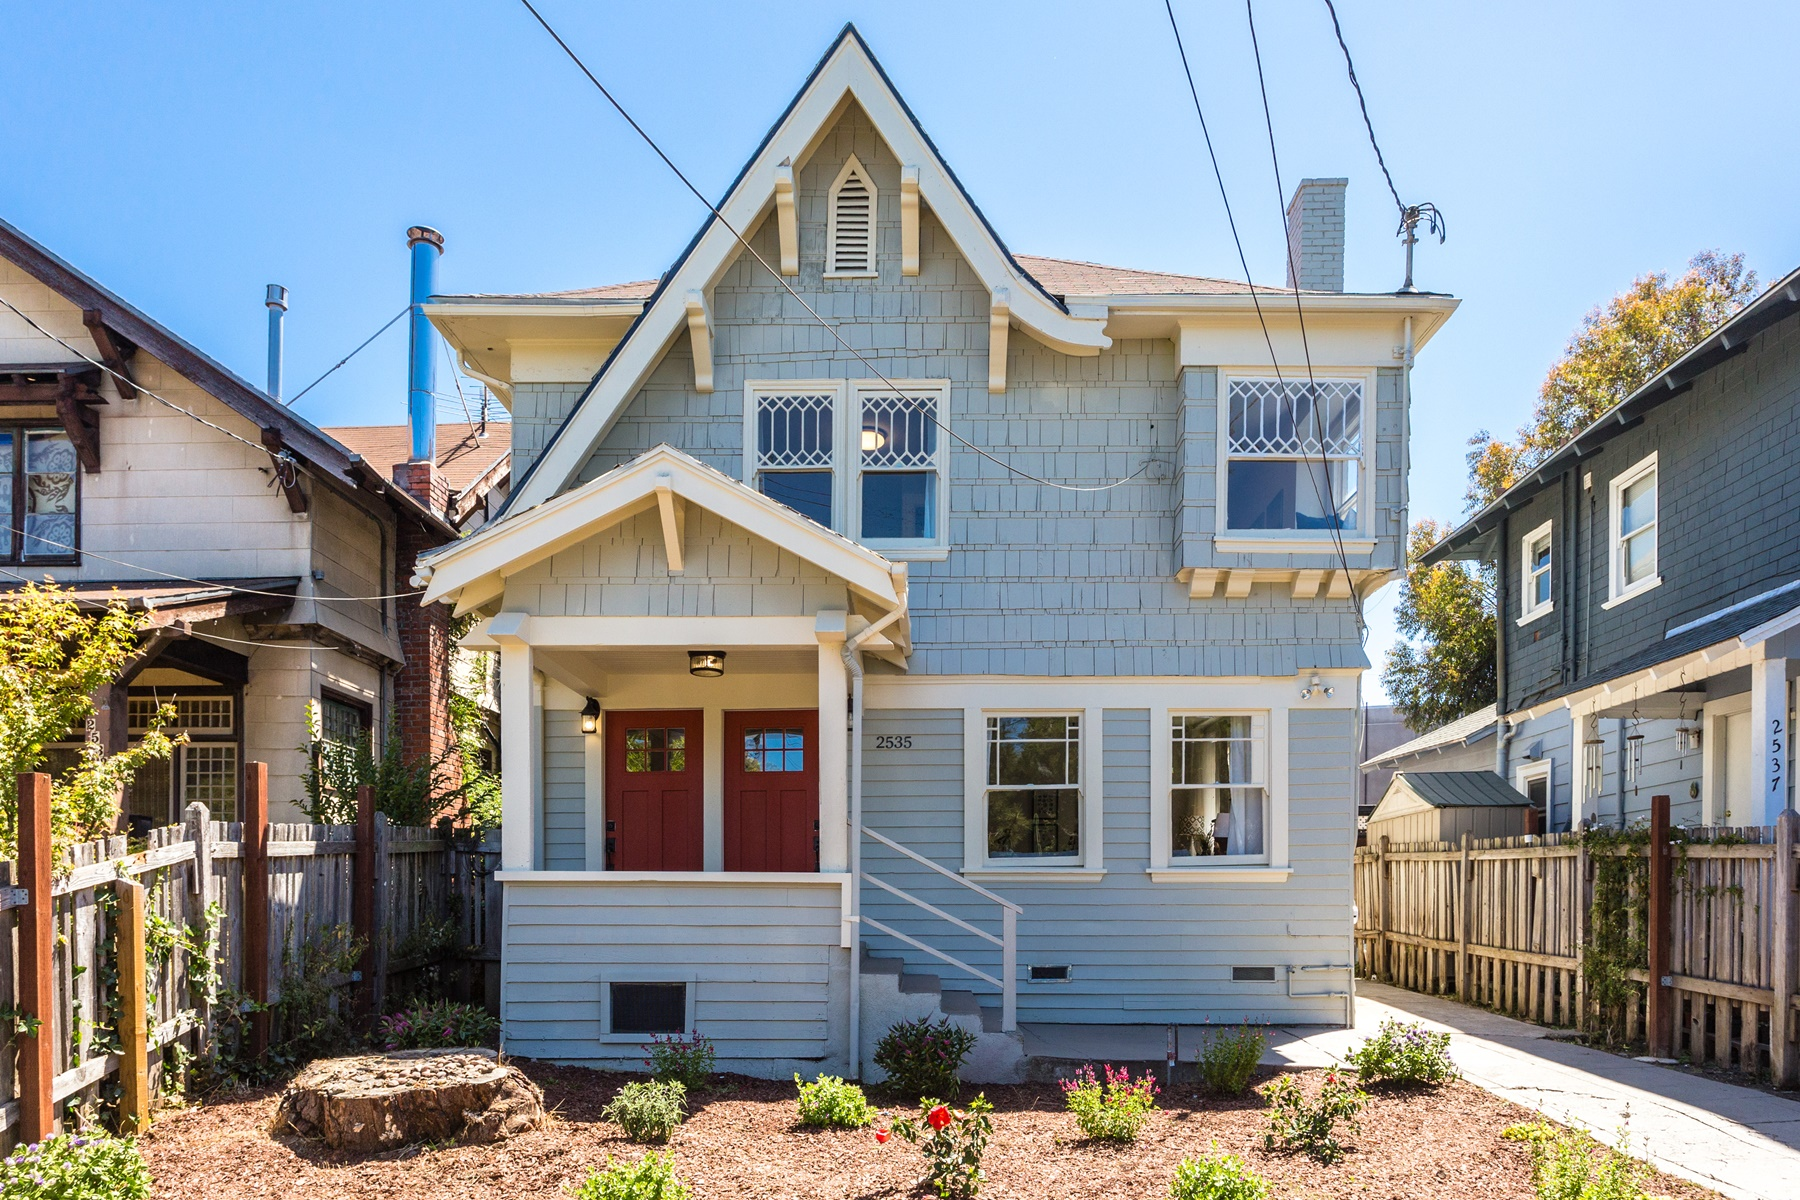 Single Family Home for Sale at Charming And Sunny Duplex 2535 Chilton Way Berkeley, California 94707 United States